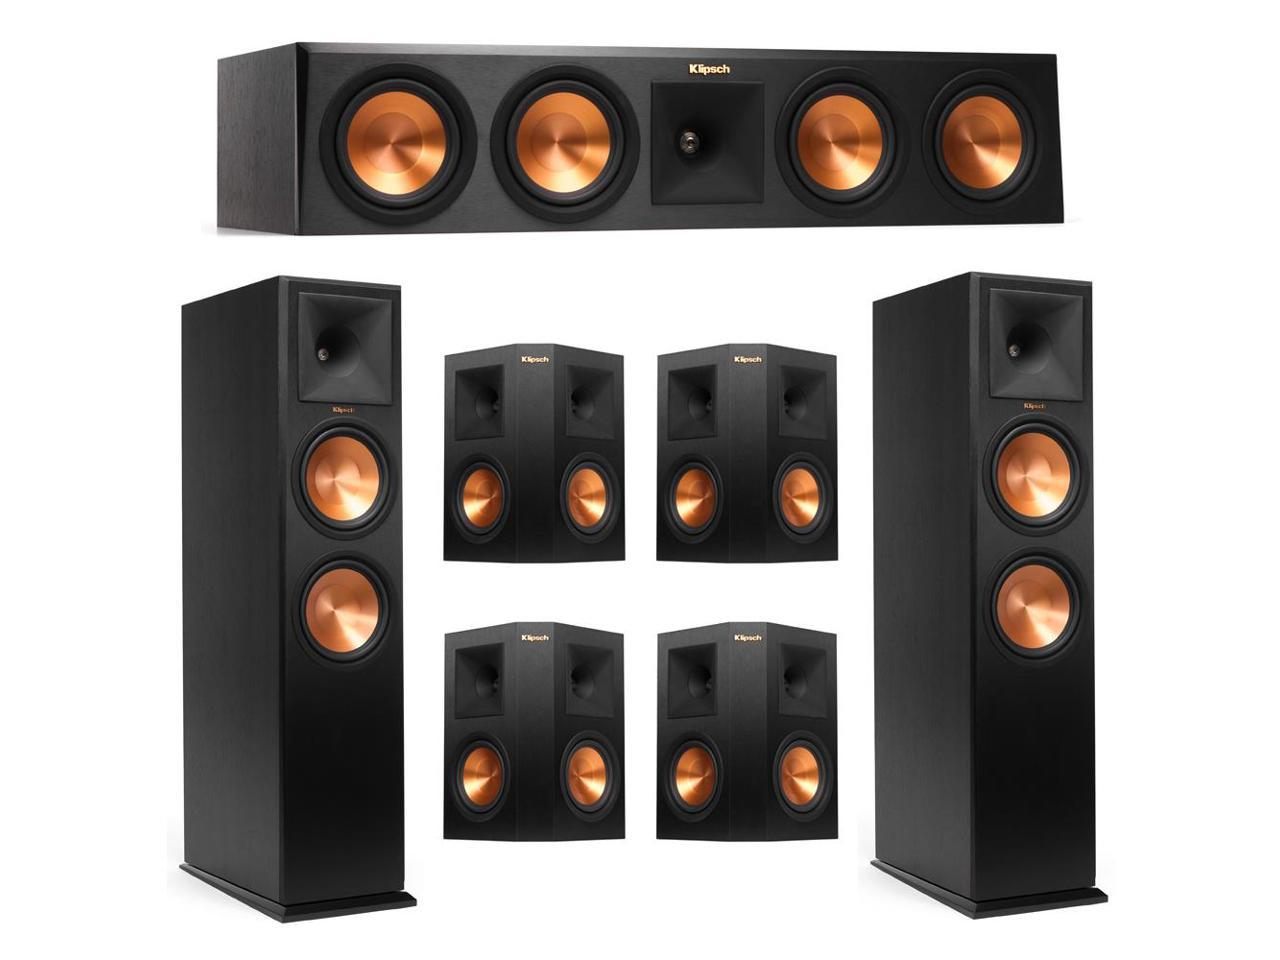 Klipsch 7.0 System with 2 RP-280F Tower Speakers, 1 RP-450C Center Speaker, 4 Klipsch RP-250S Surround Speaker + AudioQuest Bundle